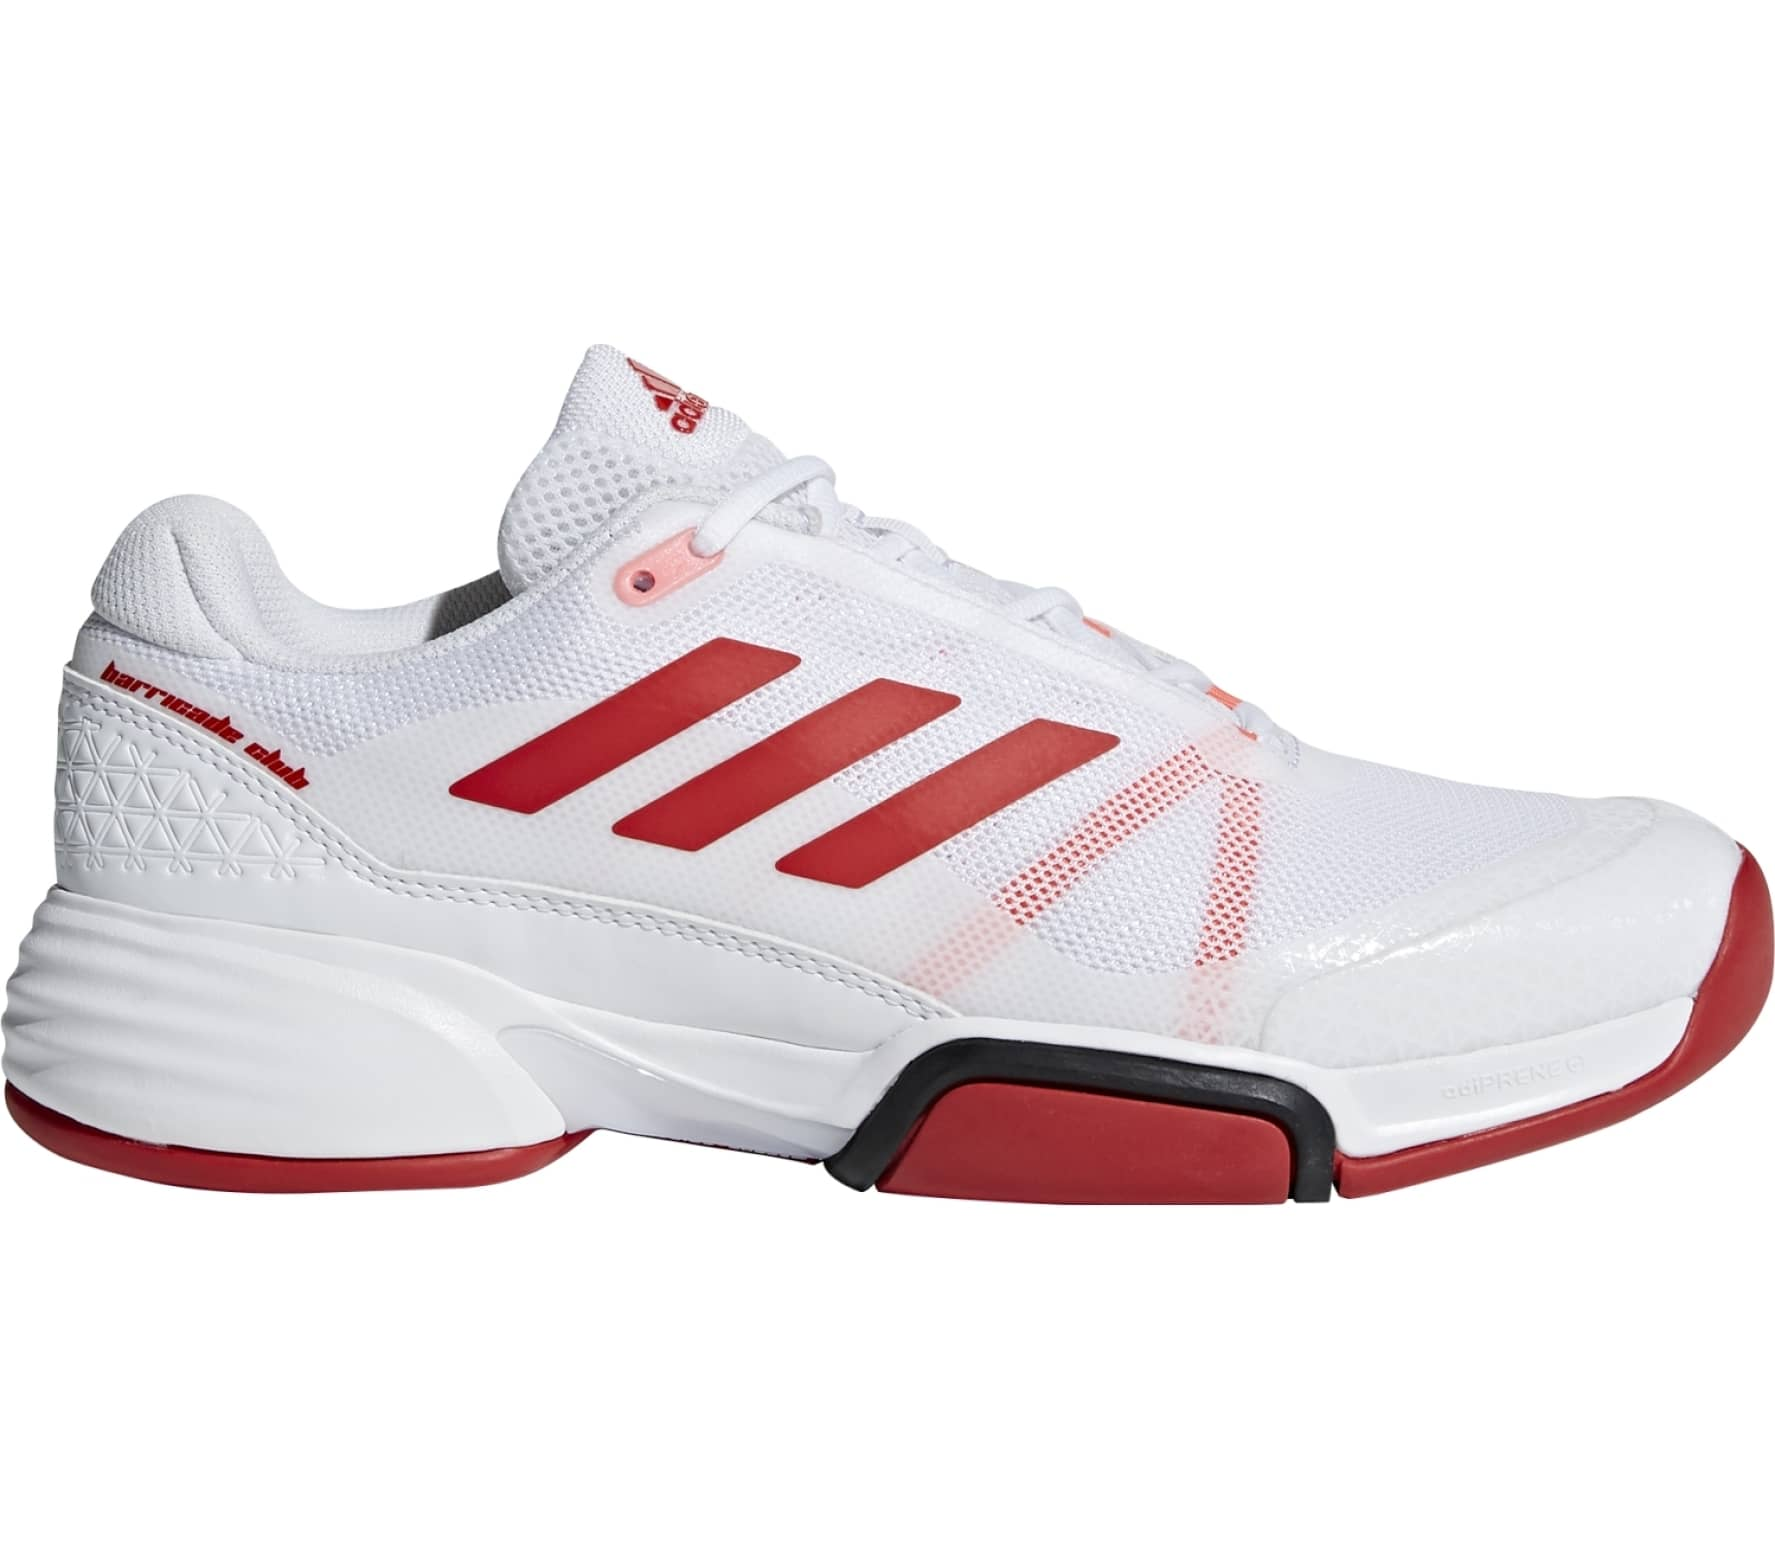 Adidas Tennisschuhe Teppich Adidas Performance Barricade Club Carpet Herren